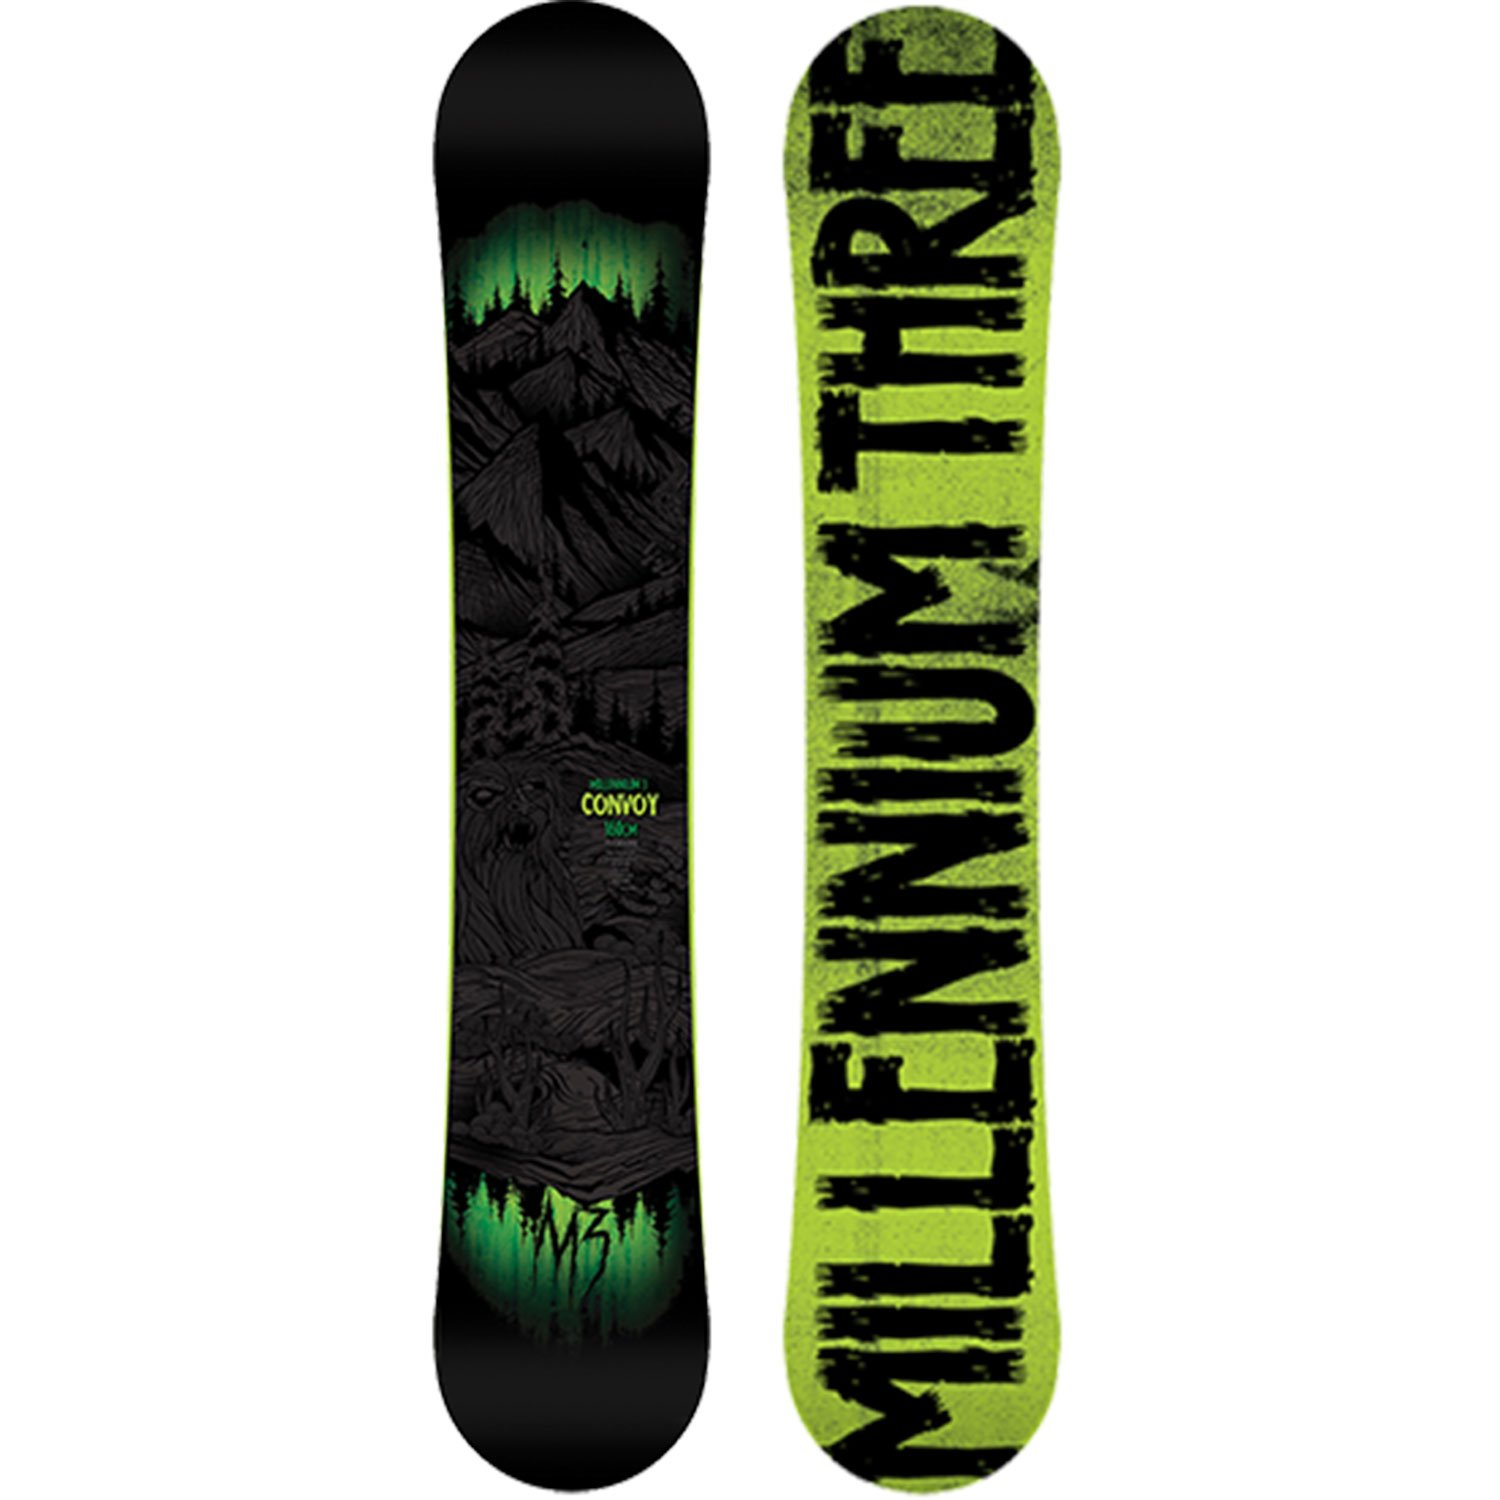 M3 Convoy (14) Snowboard-157 by M3